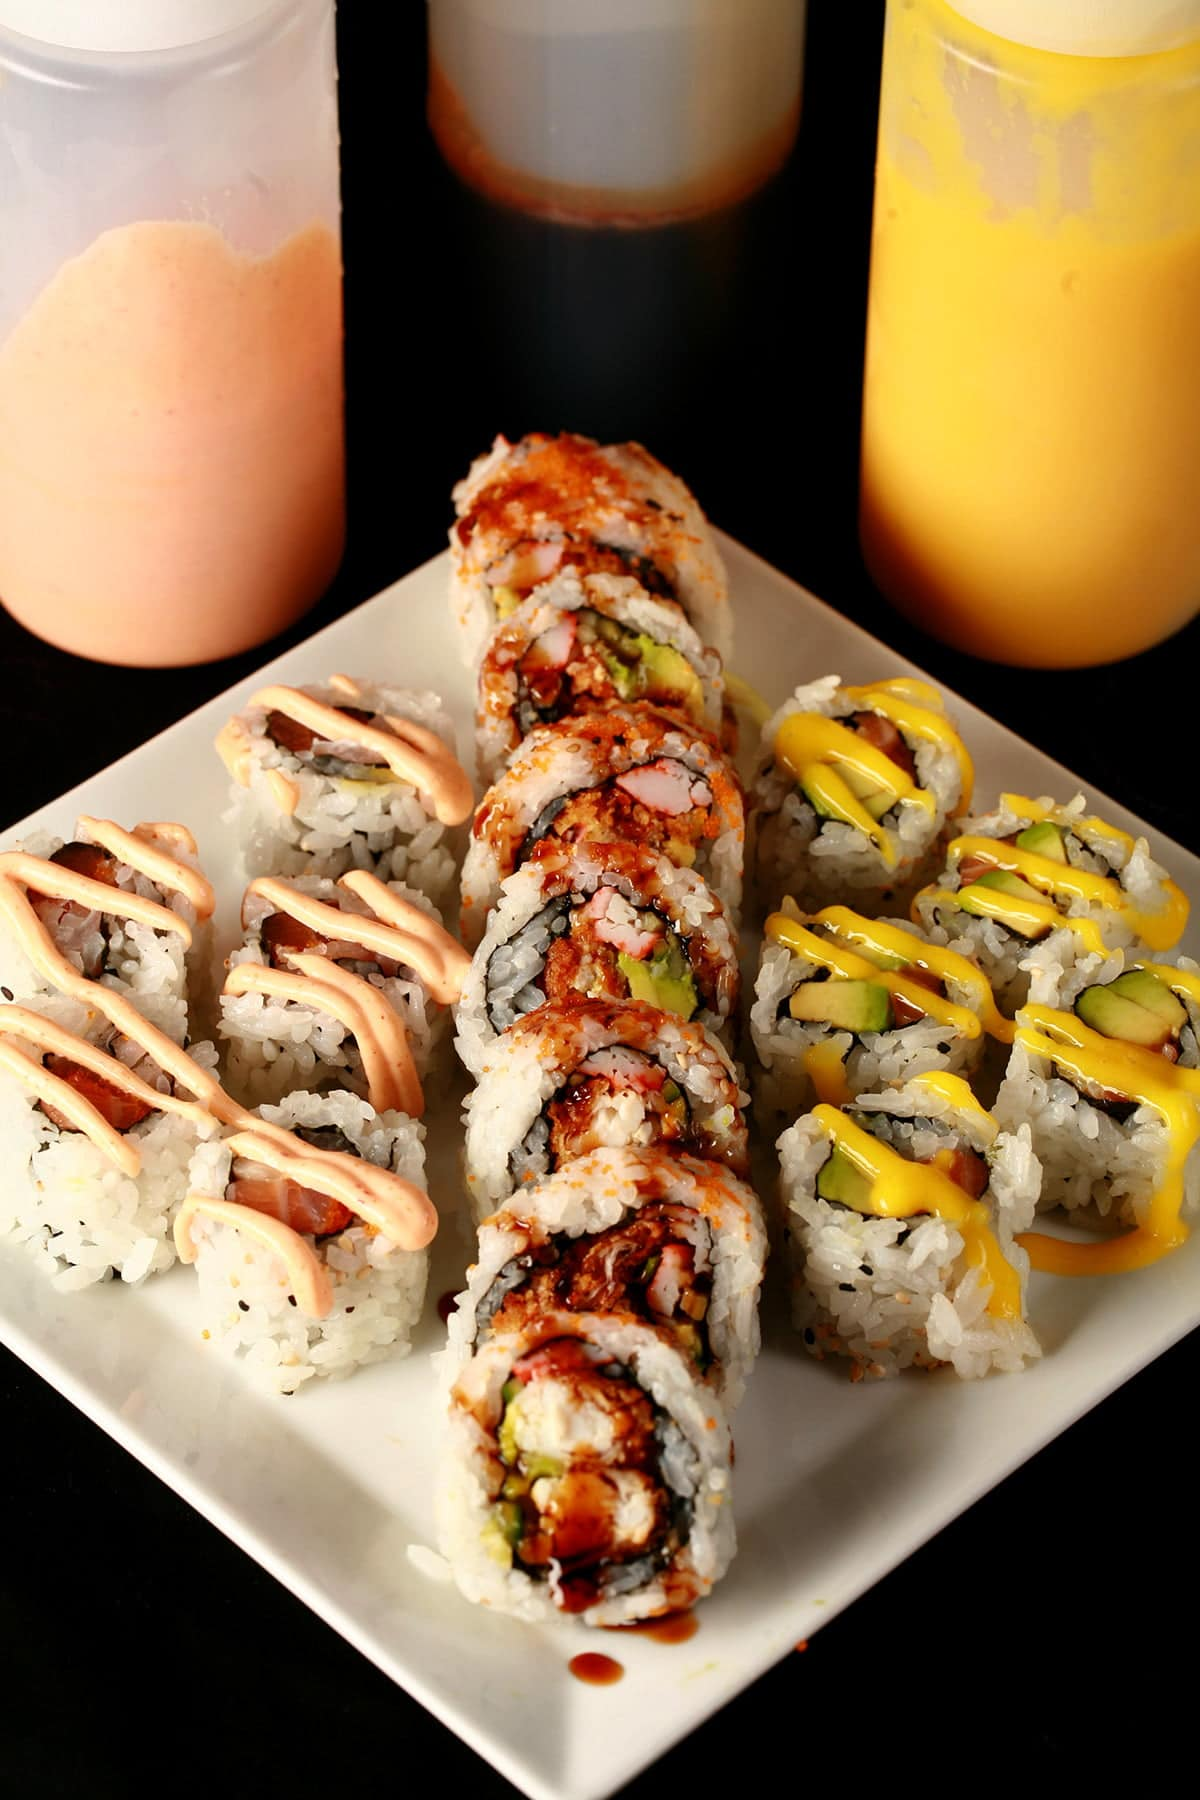 Close up image of 3 bottles of sauce - one yellow, one brown, and one pink. In front of the bottles is a plate of sushi, with the 3 colours of sauce drizzled across the sushi in squiggles